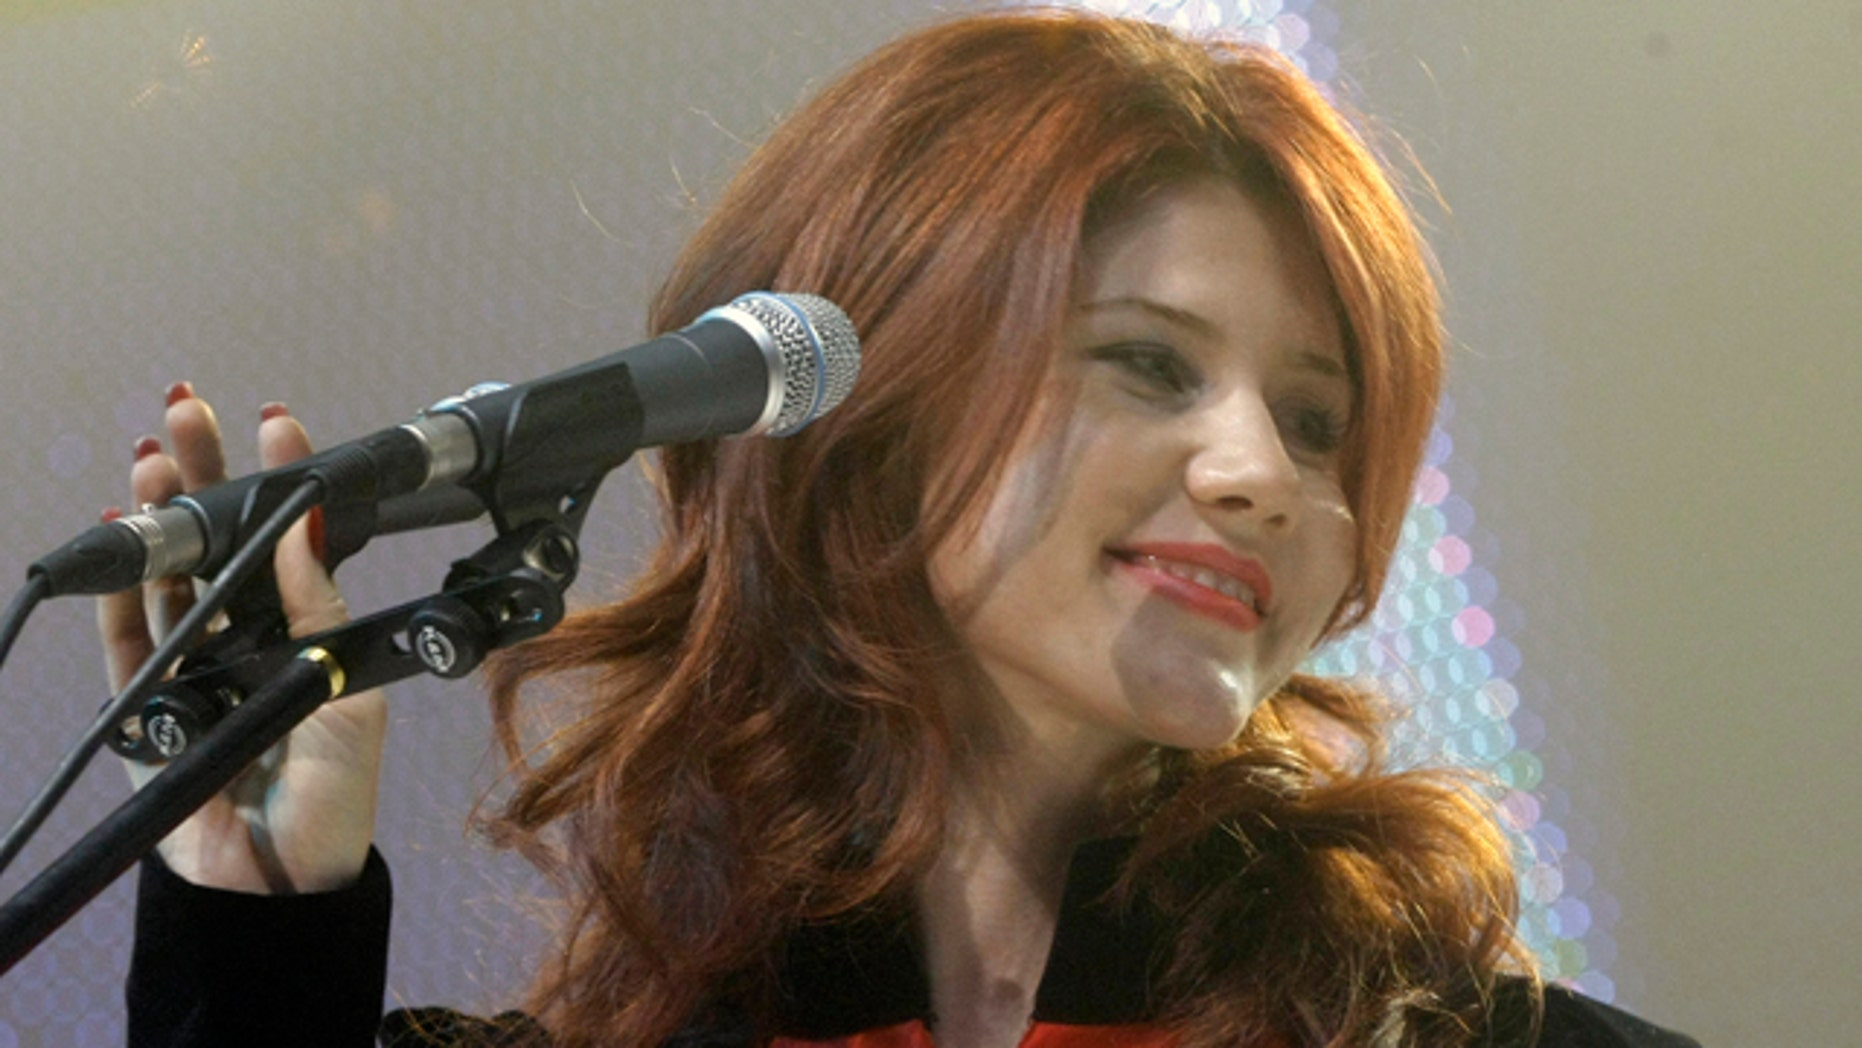 Anna Chapman, who was deported from the U.S. on charges of espionage, is on stage with the leaders of Young Guards, a pro-Kremlin youth movement she joined, in Moscow, Russia, Wednesday, Dec. 22, 2010.